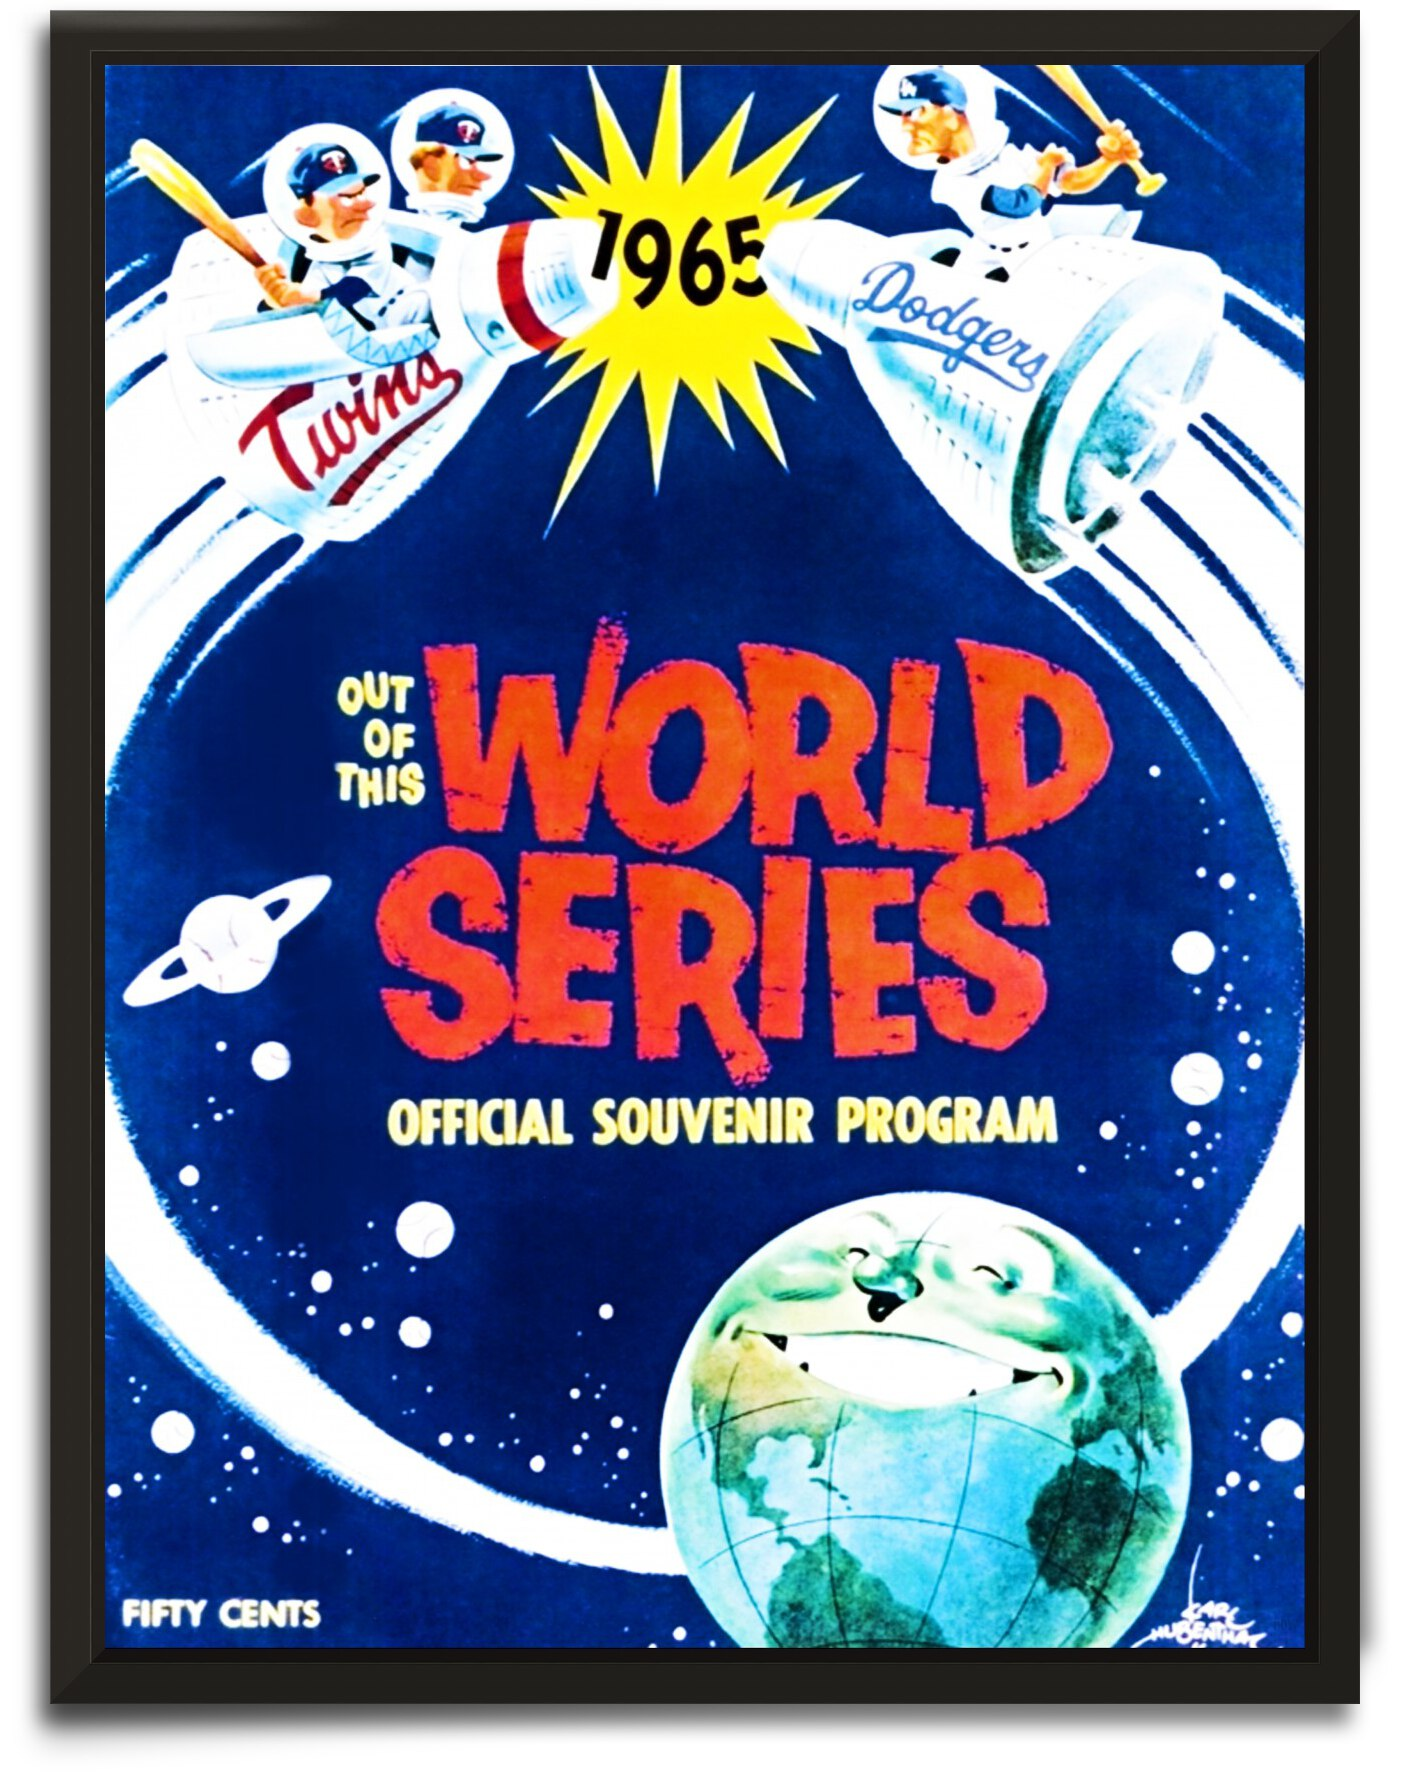 1965 World Series Program Cover Art by Row One Brand